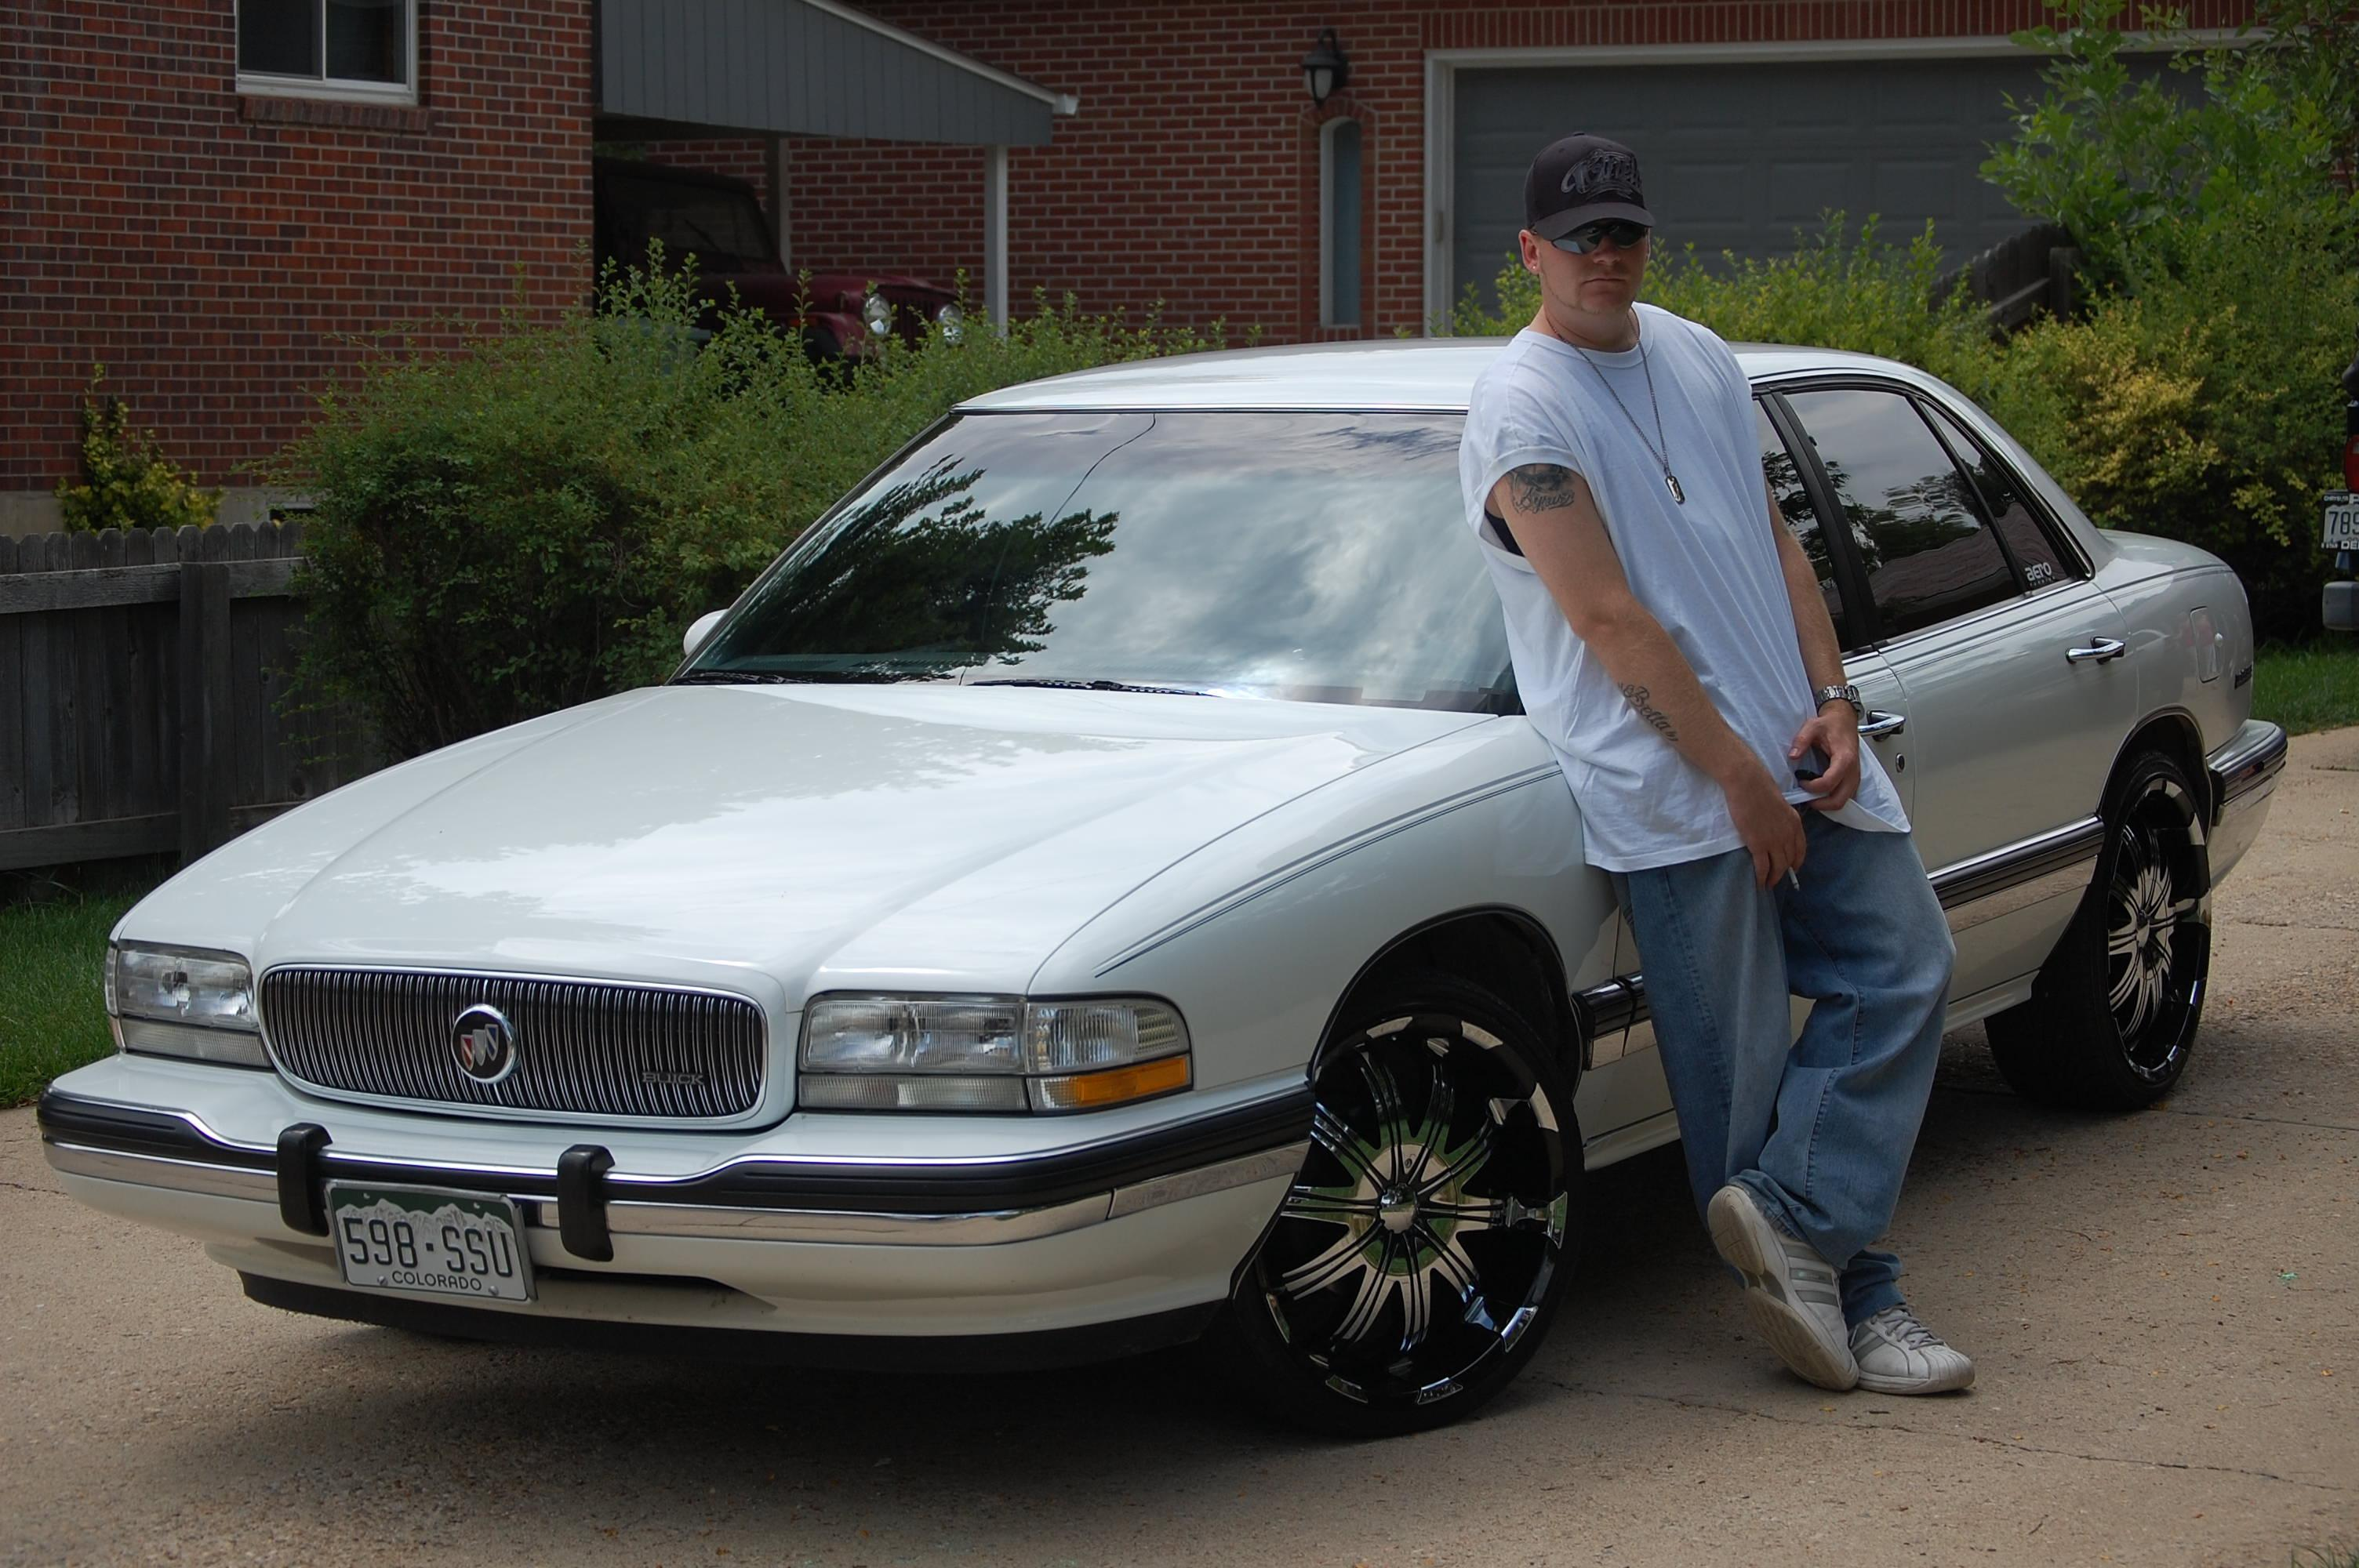 size buick master full have up battery switch module image driver goes i and lesabre only a window the power